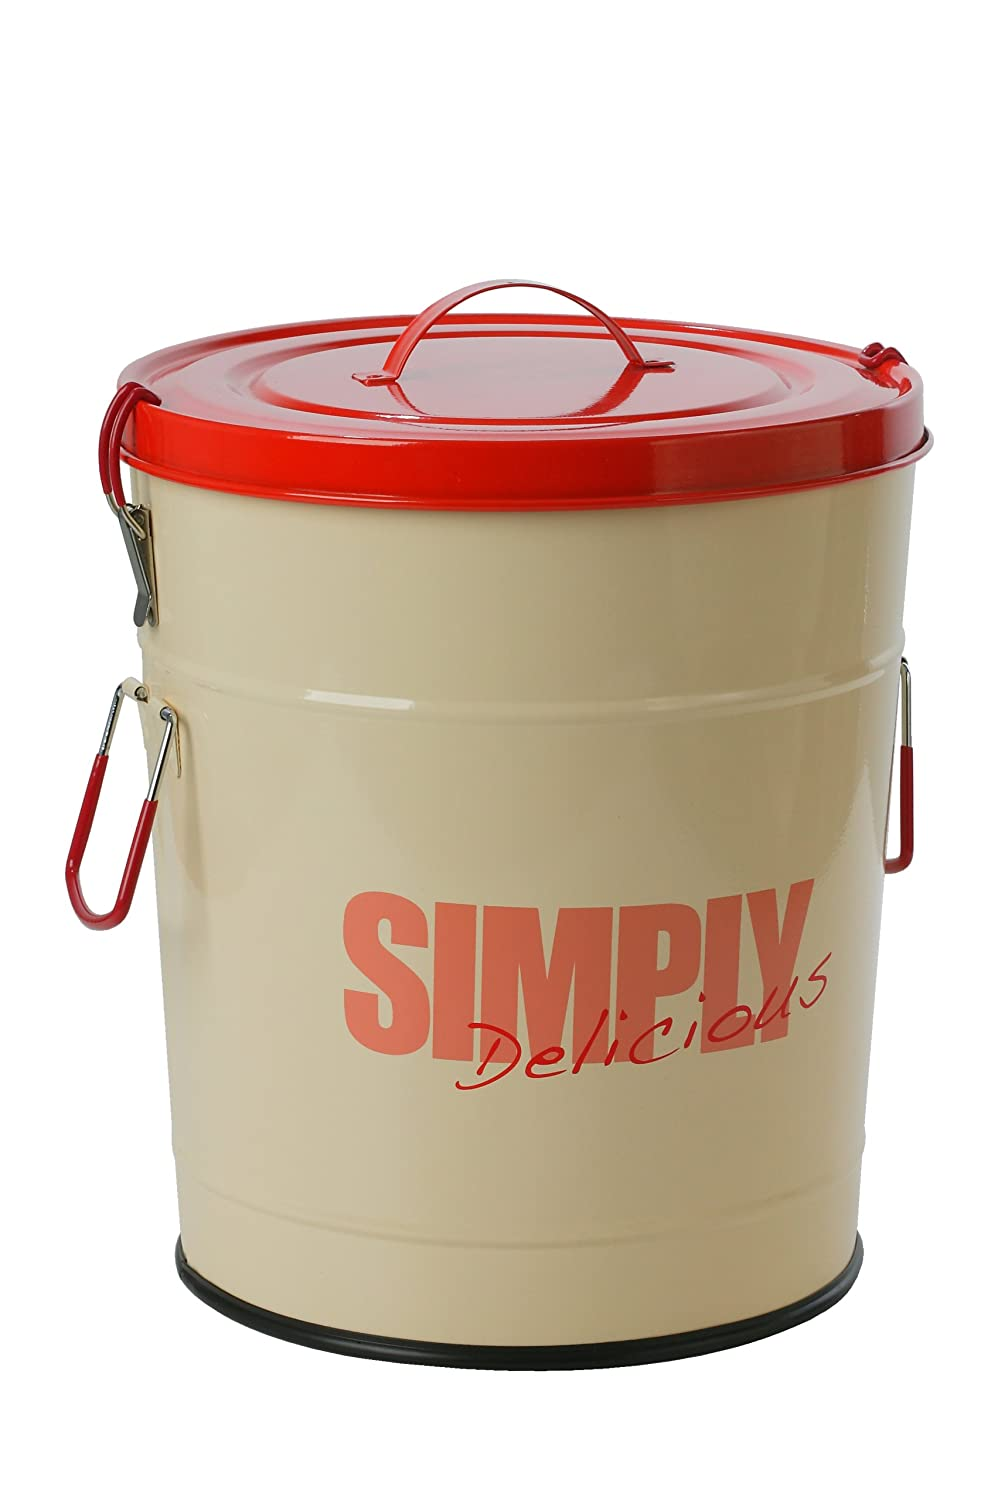 One for Pets 1106-RD-S Simply Delicious 17.6 lbs 8kg Food Can, Red